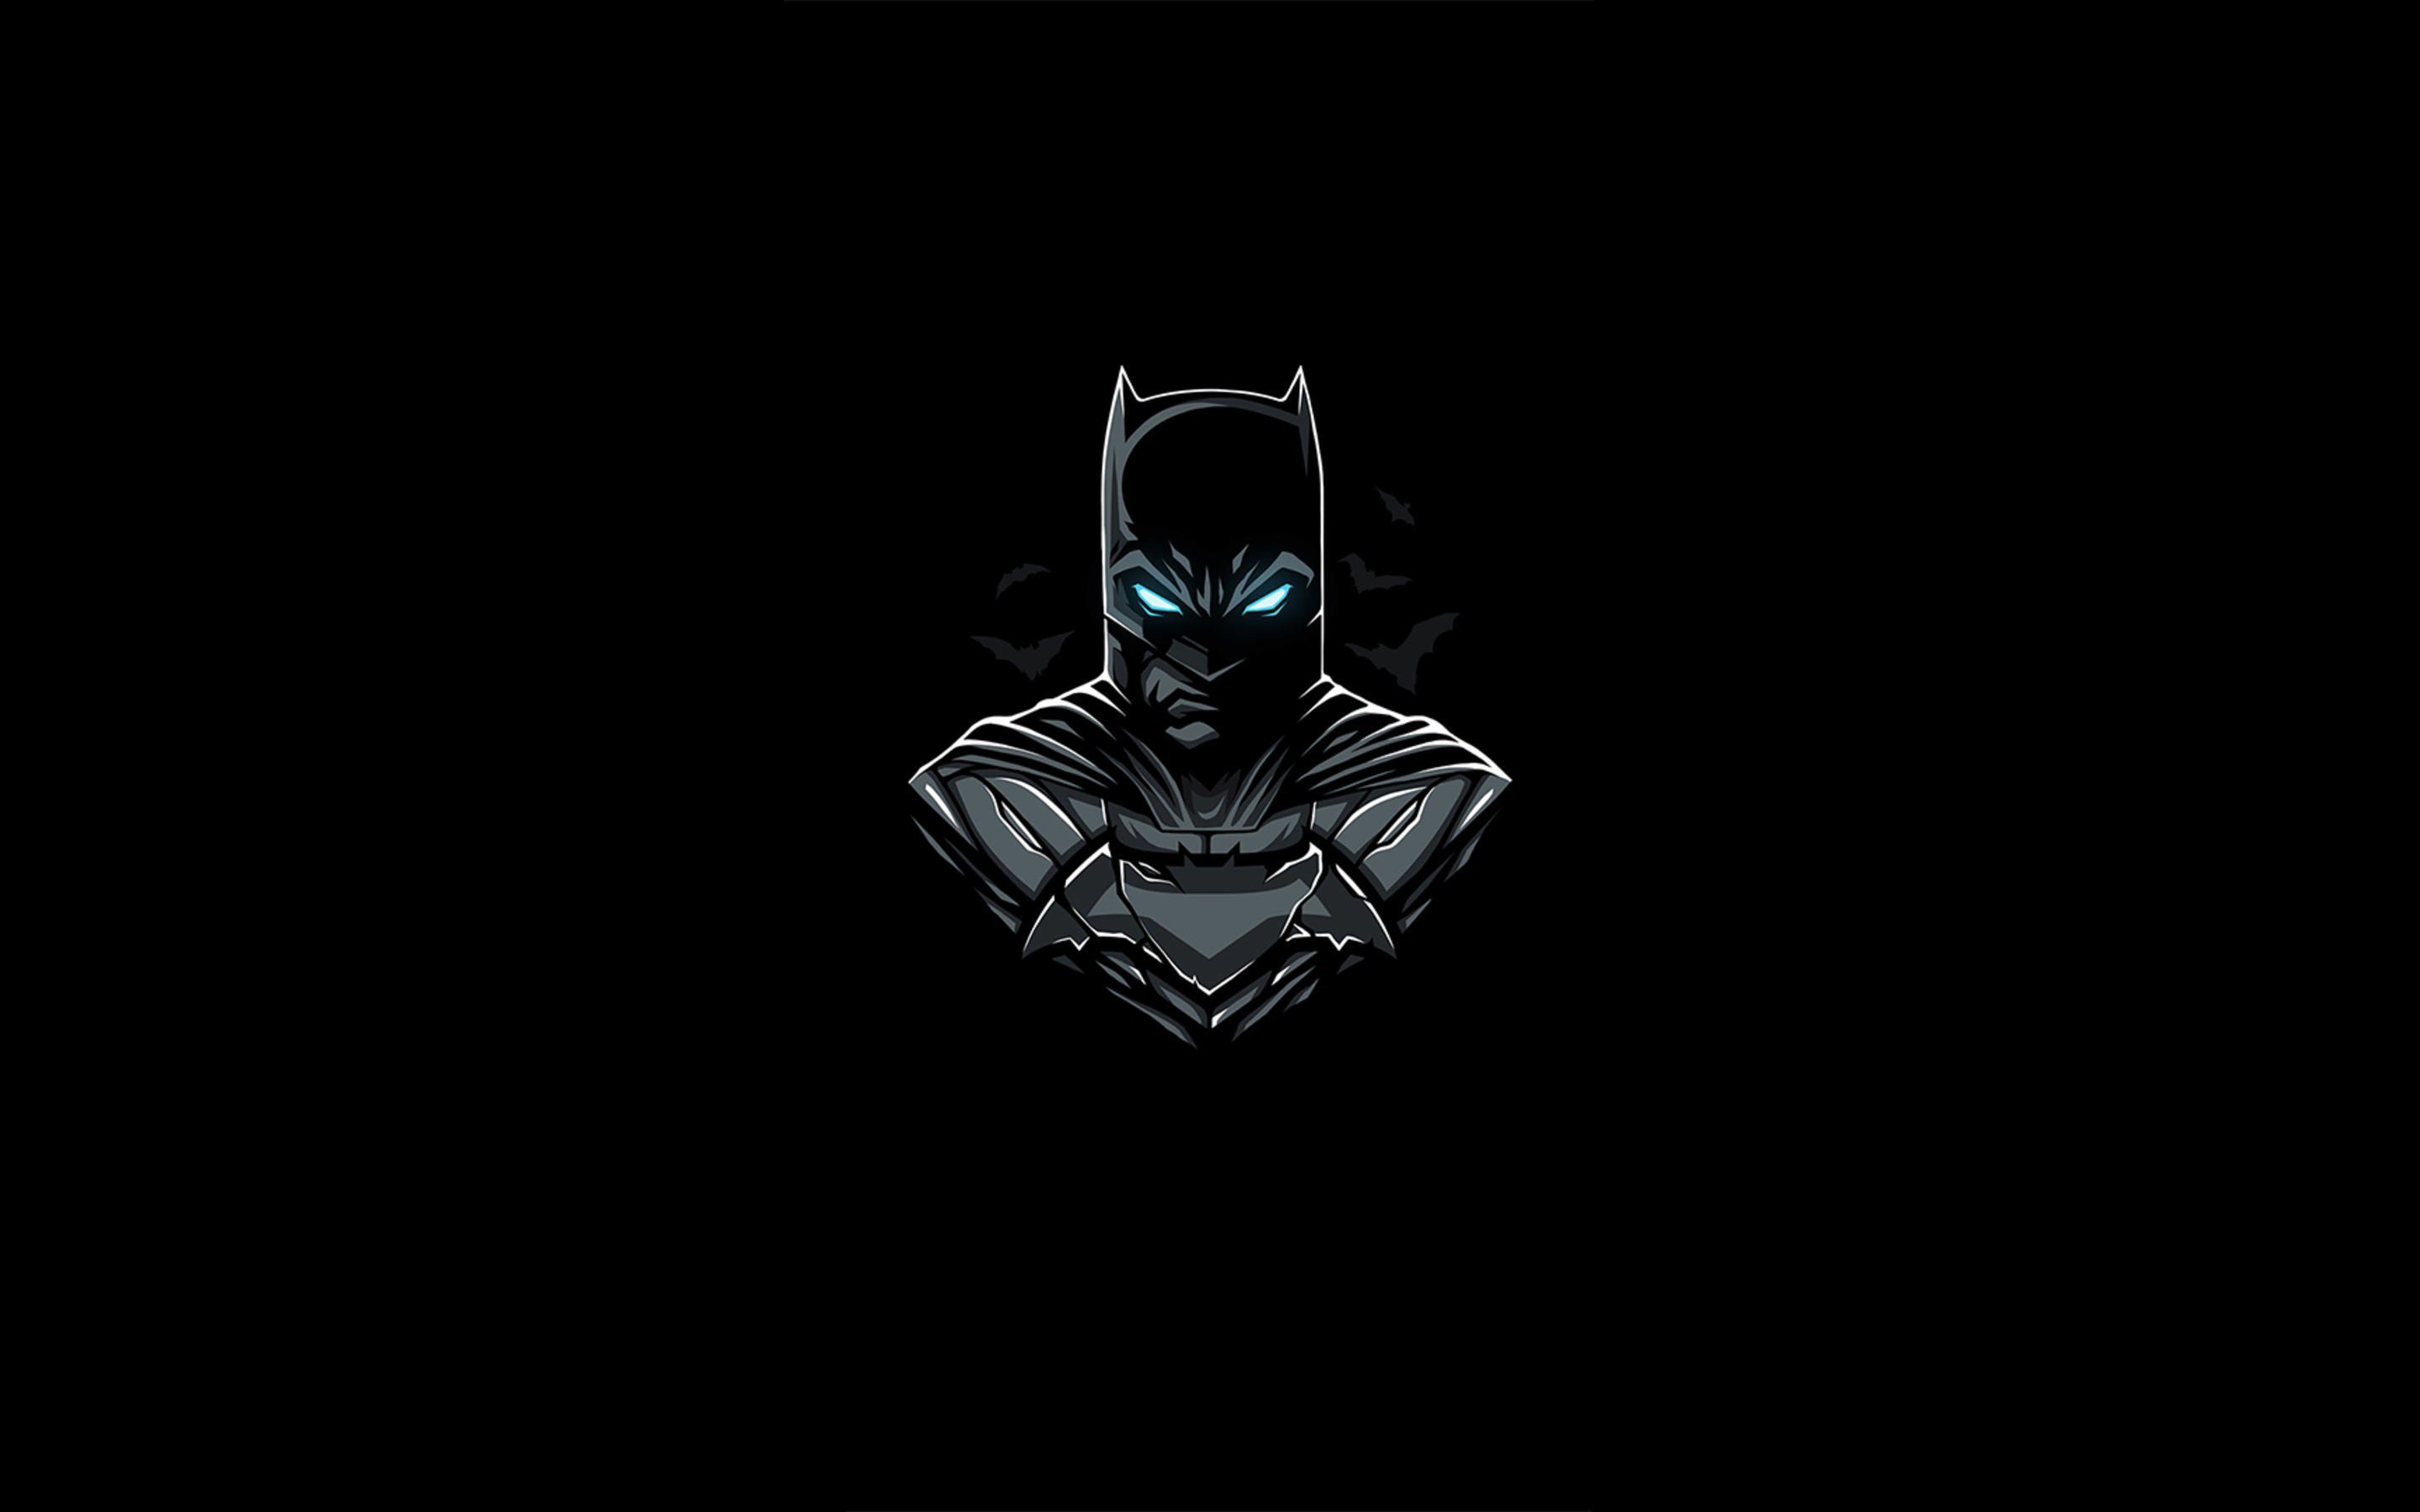 Cool Wallpaper Macbook Batman - batman-amoled-0a-2880x1800  Picture_962780.jpg